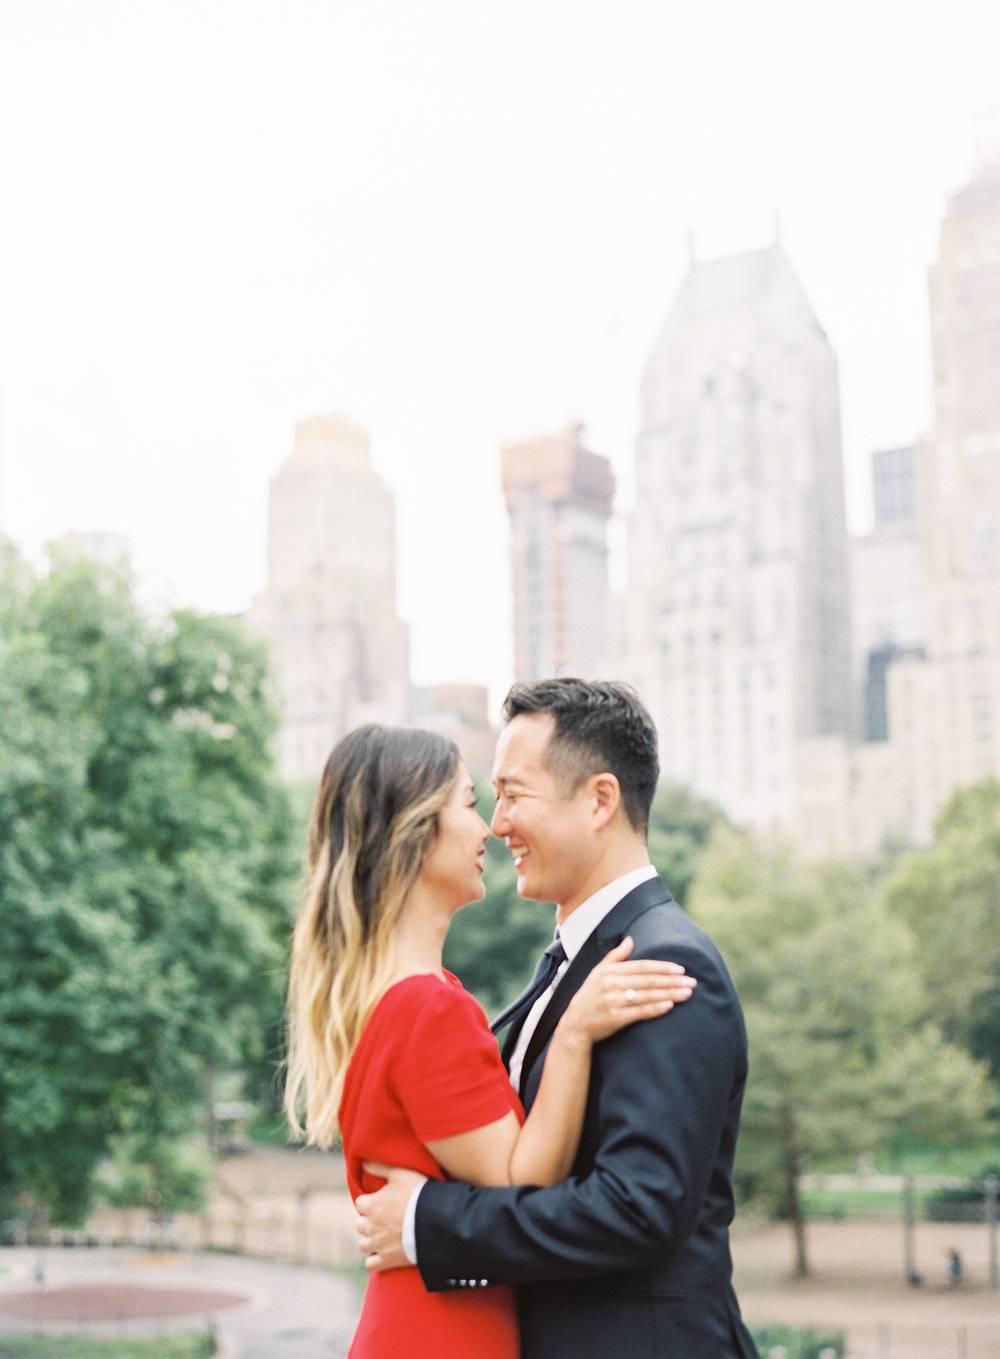 New-York-Film-Engagement-Session-Brooklyn-Bridge-Central-Park-26.jpg